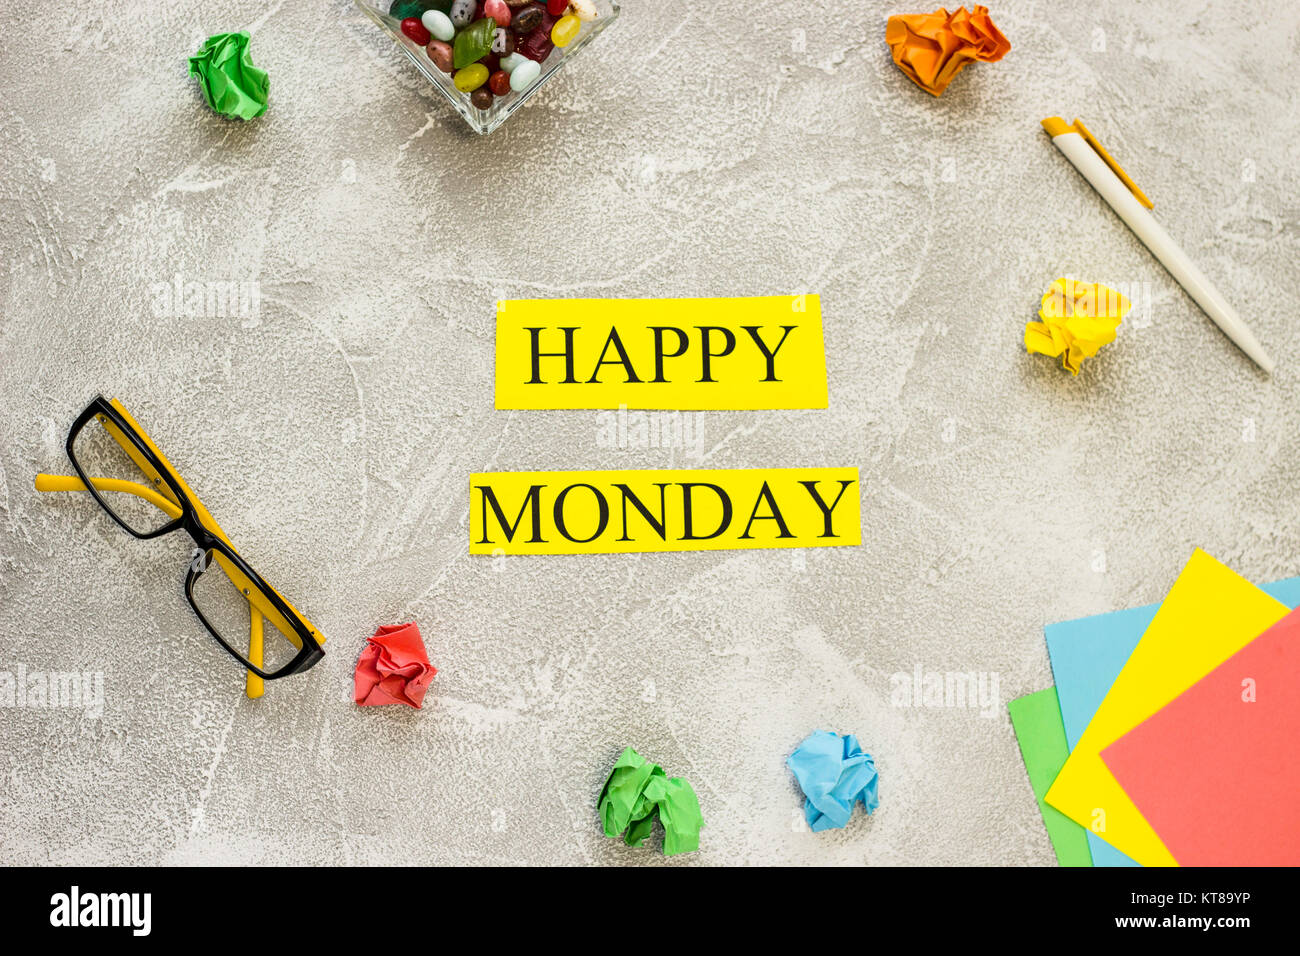 Happy Monday Inscription Printed On A Yellow Paper In A Frame Of